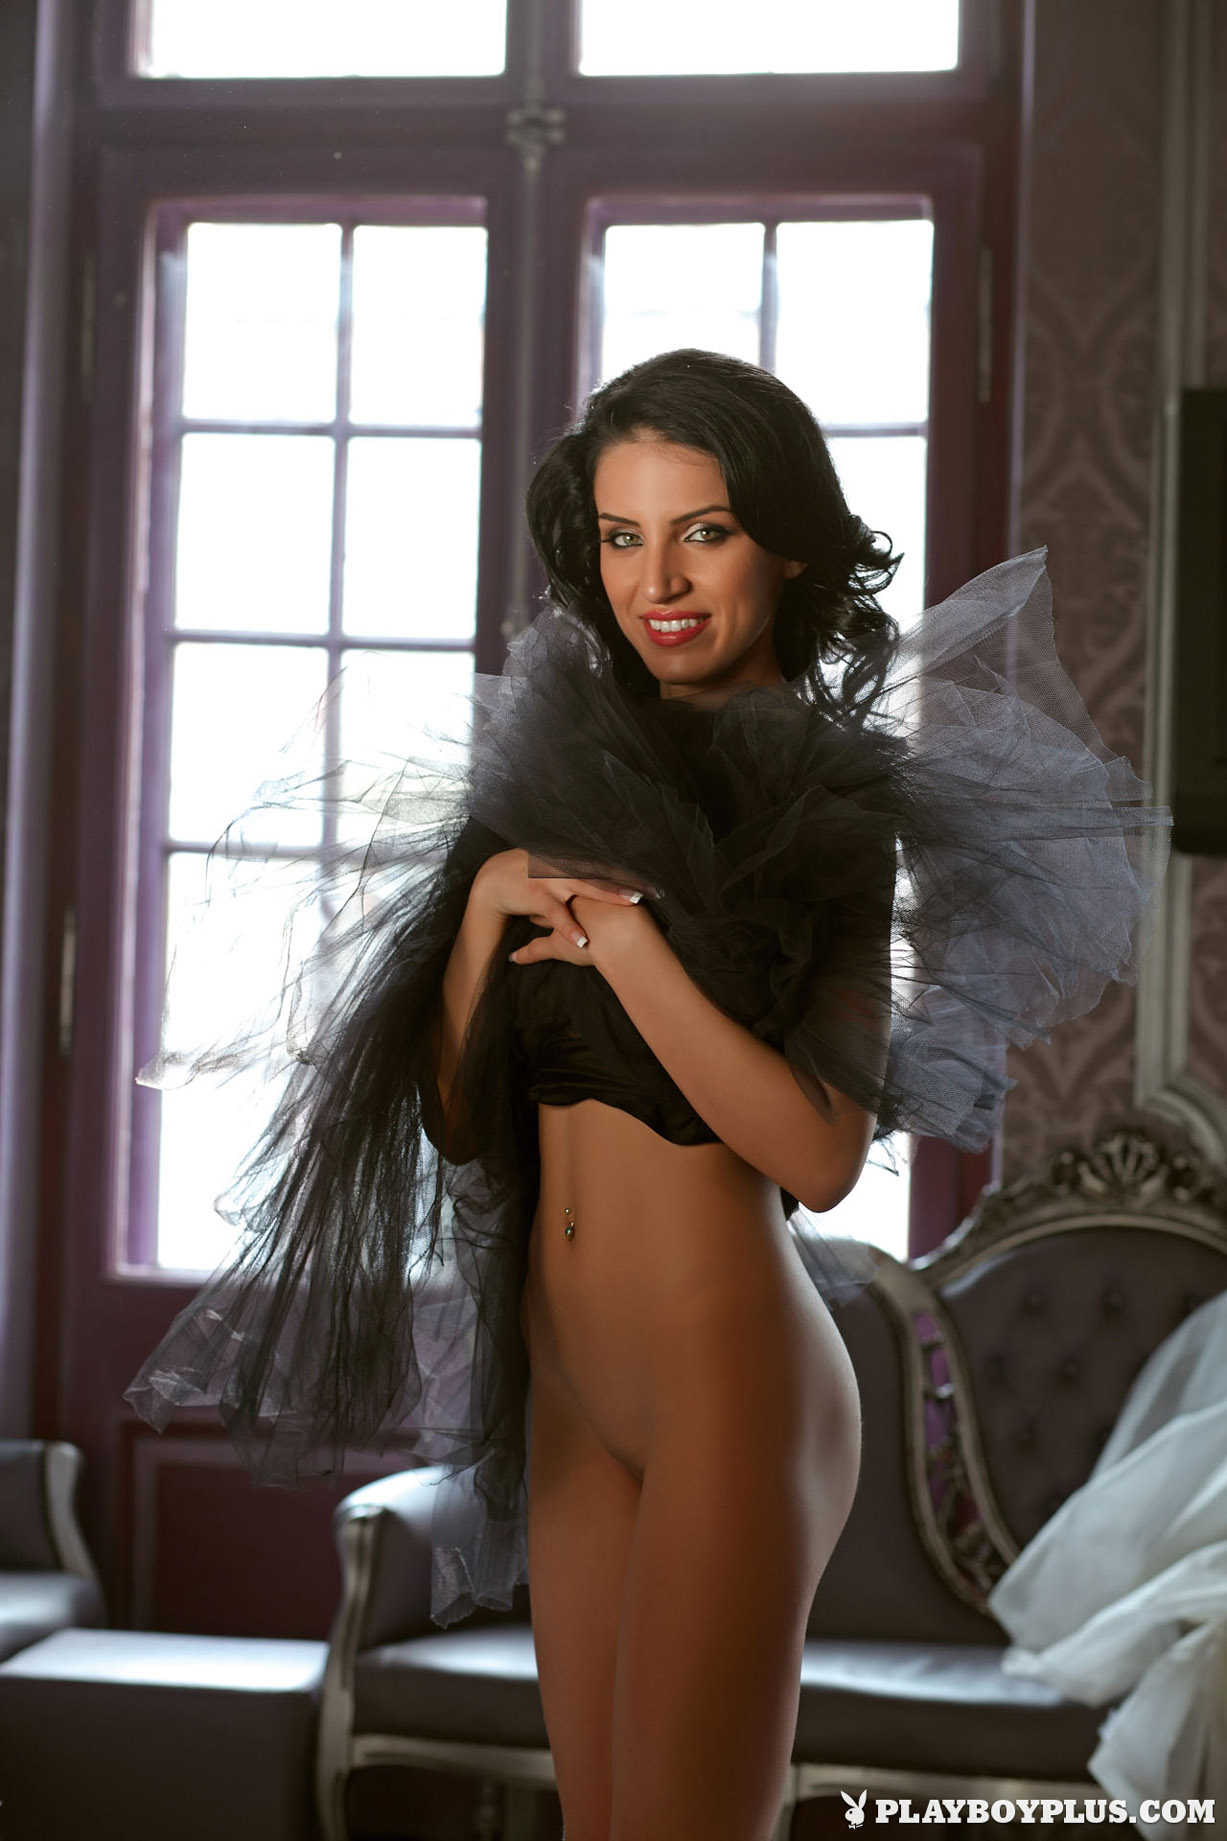 голая невеста Аделина Варчю / Adelina Varciu - Playboy Romania may 2010